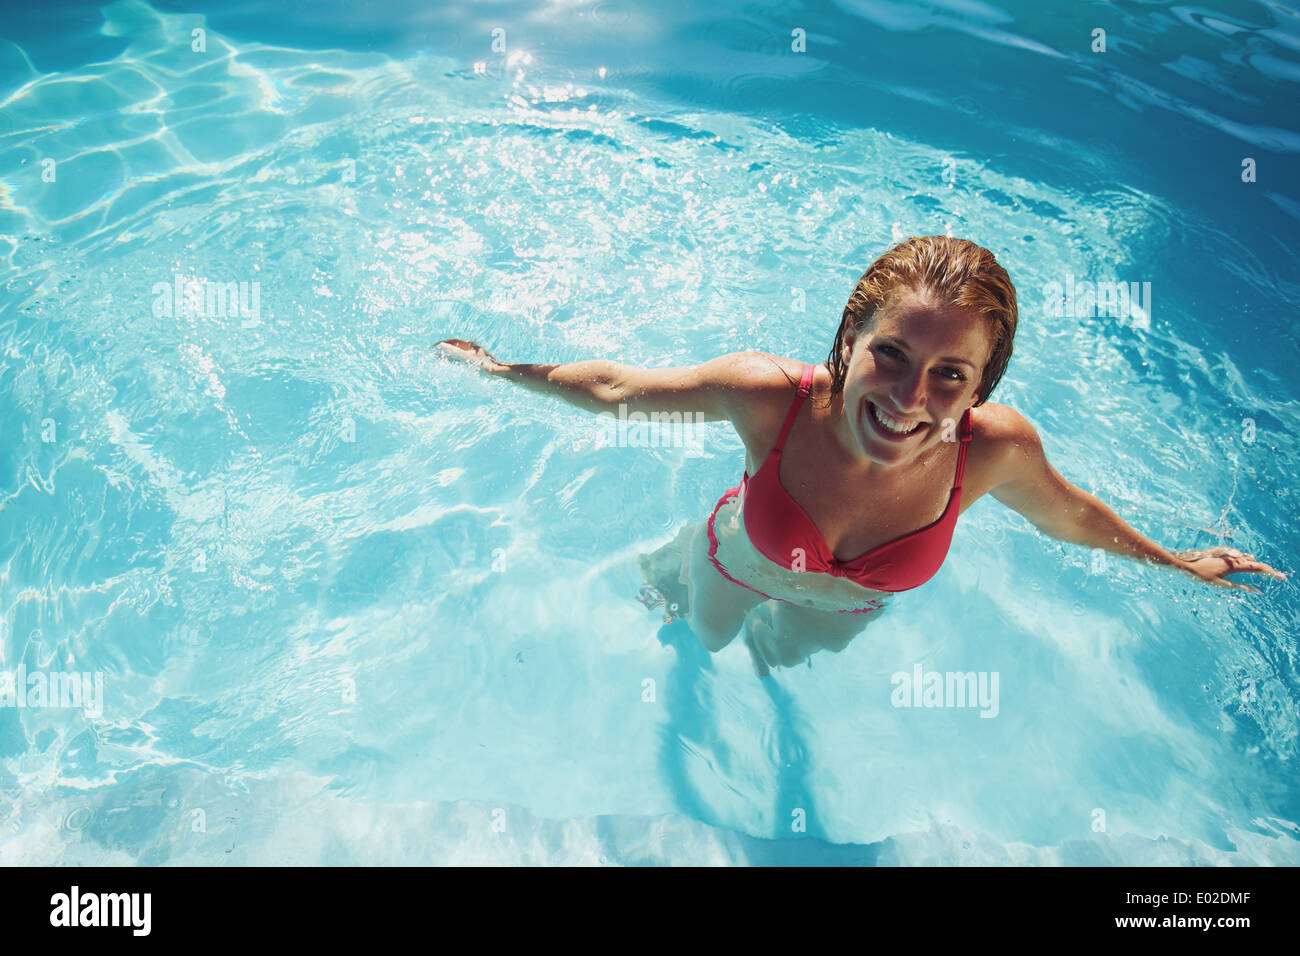 Happy young girl relaxing in a swimming pool. Smiling young woman wearing swimwear standing in pool looking at camera. Stock Photo